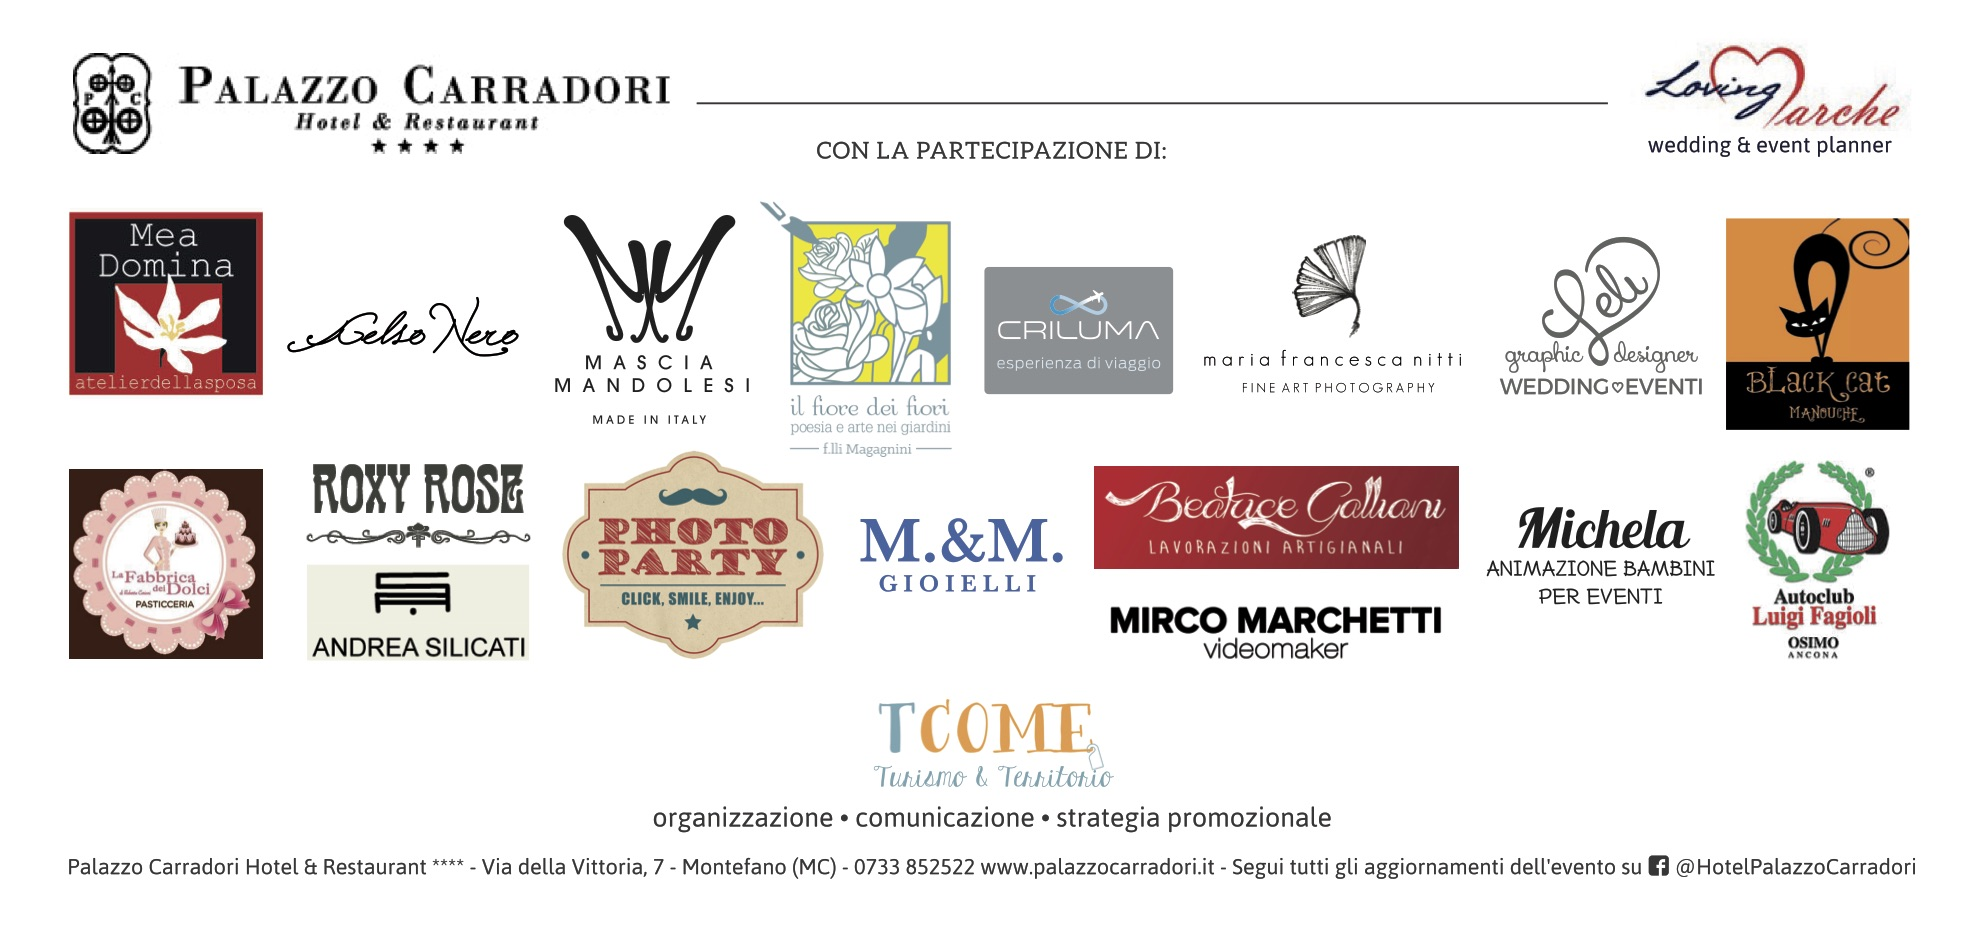 Espositori presenti all'evento